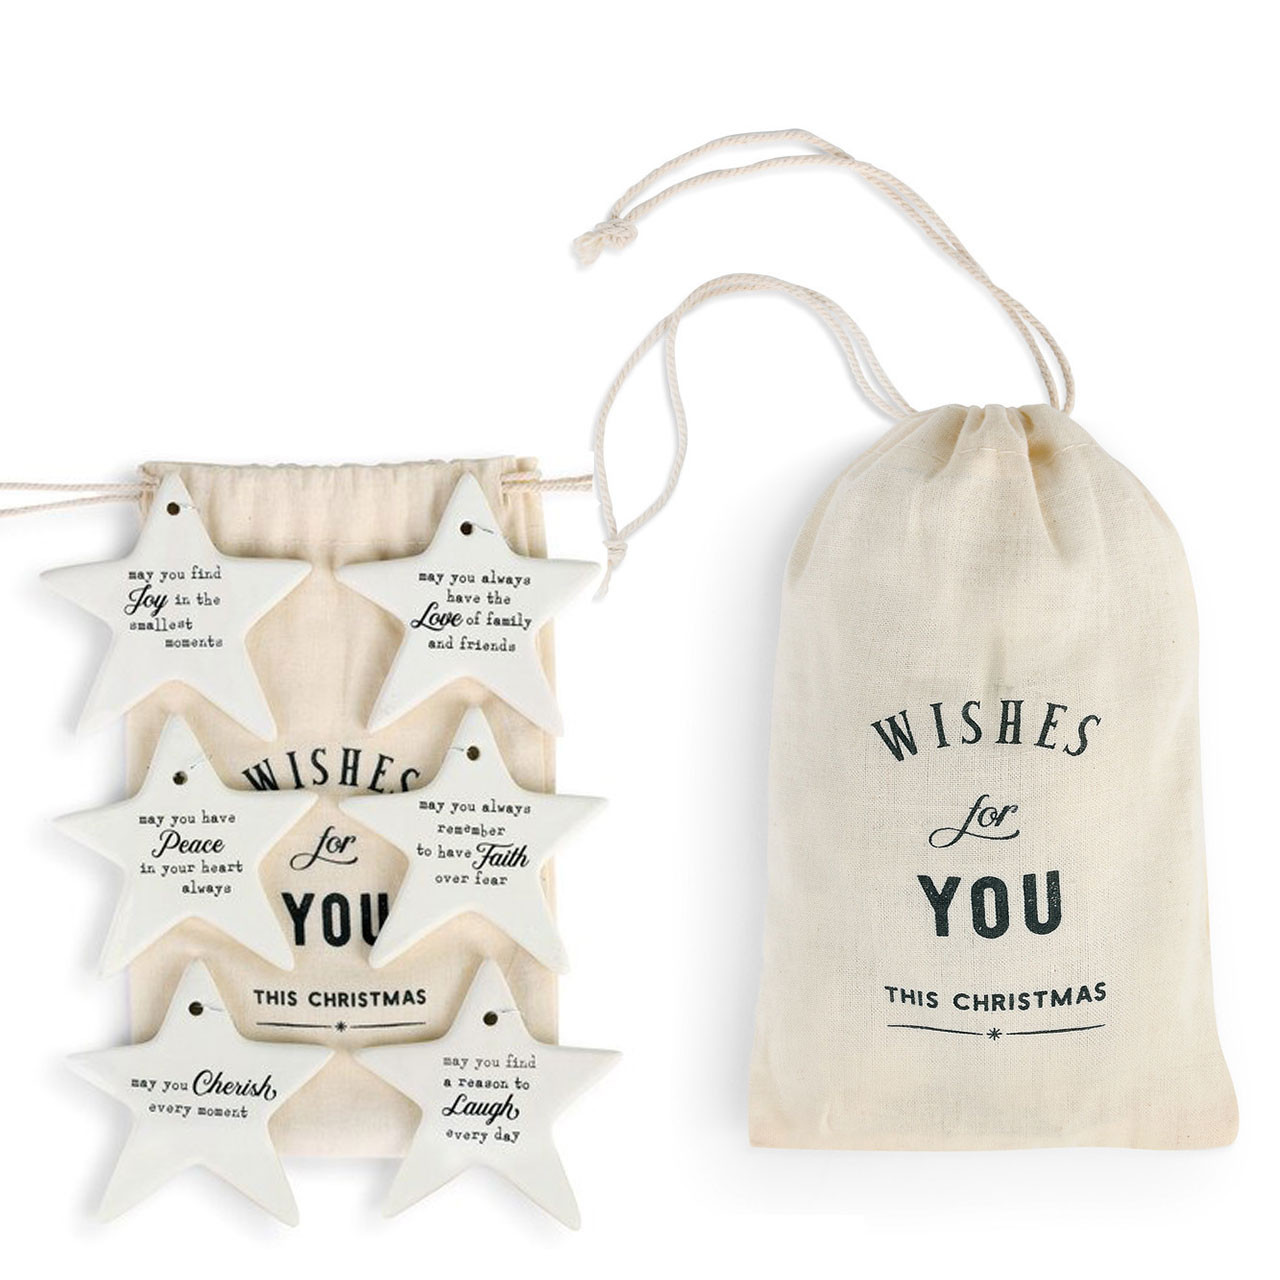 Bag of Christmas Wishes Ornaments